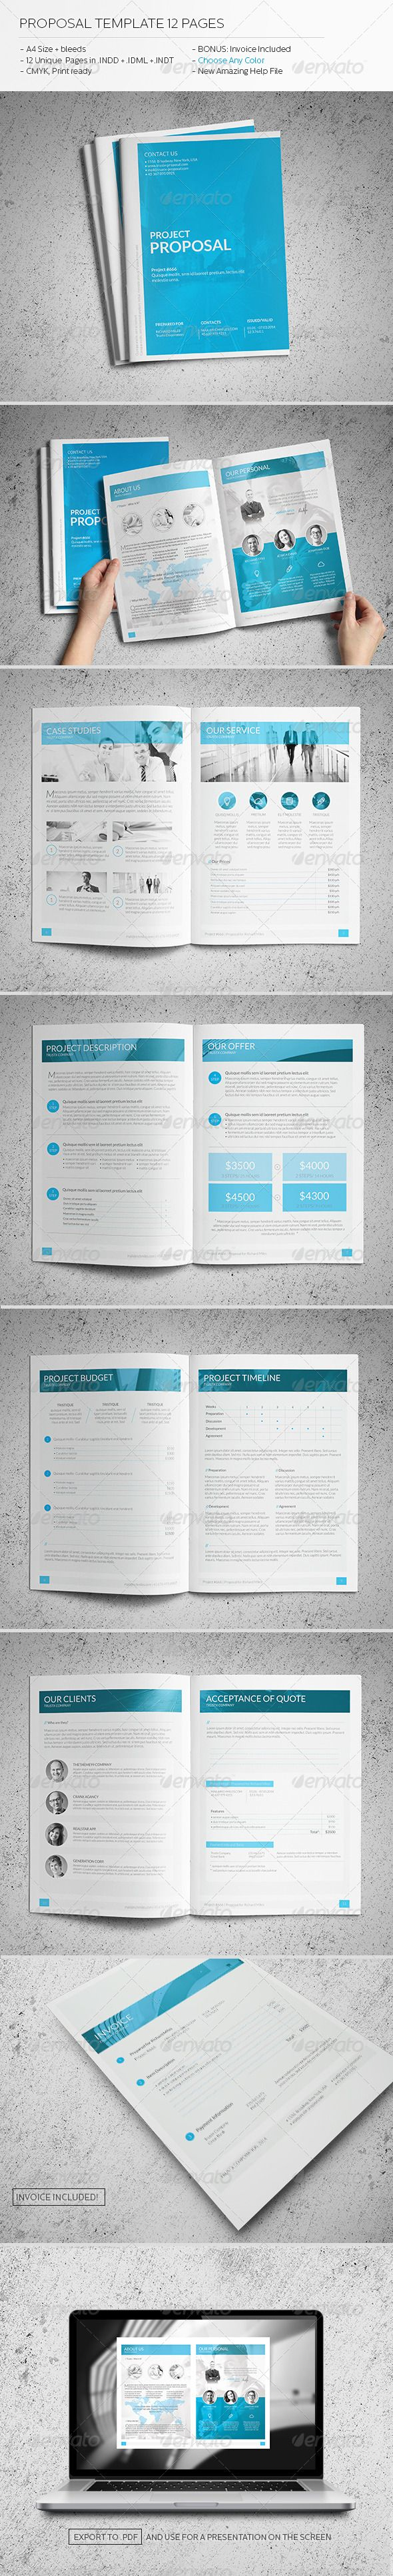 Commercial Proposal Format Interesting Commercial Proposal Template #12  Branding  Pinterest  Proposal .